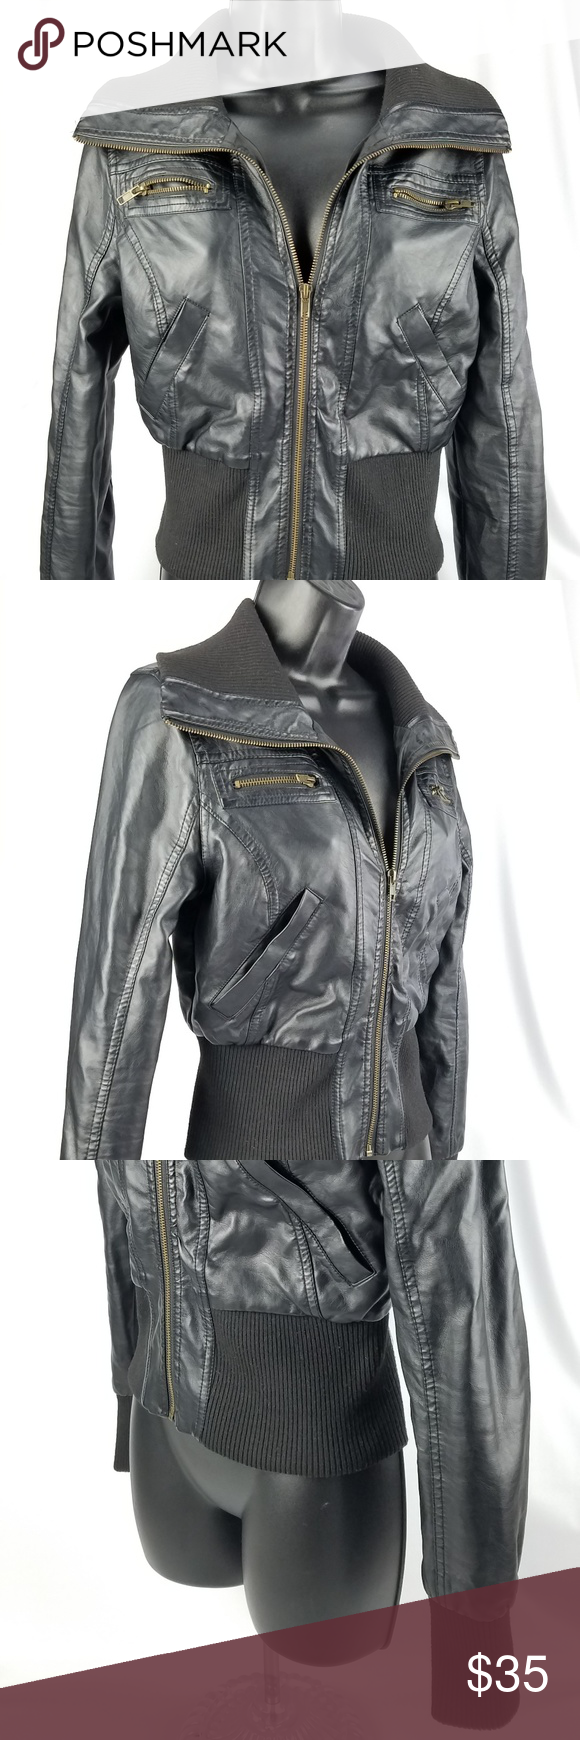 Ambiance Apparel Bomber Faux Leather Jacket Small Ambiance Apparel Leather Jacket Faux Leather Jackets [ 1740 x 580 Pixel ]